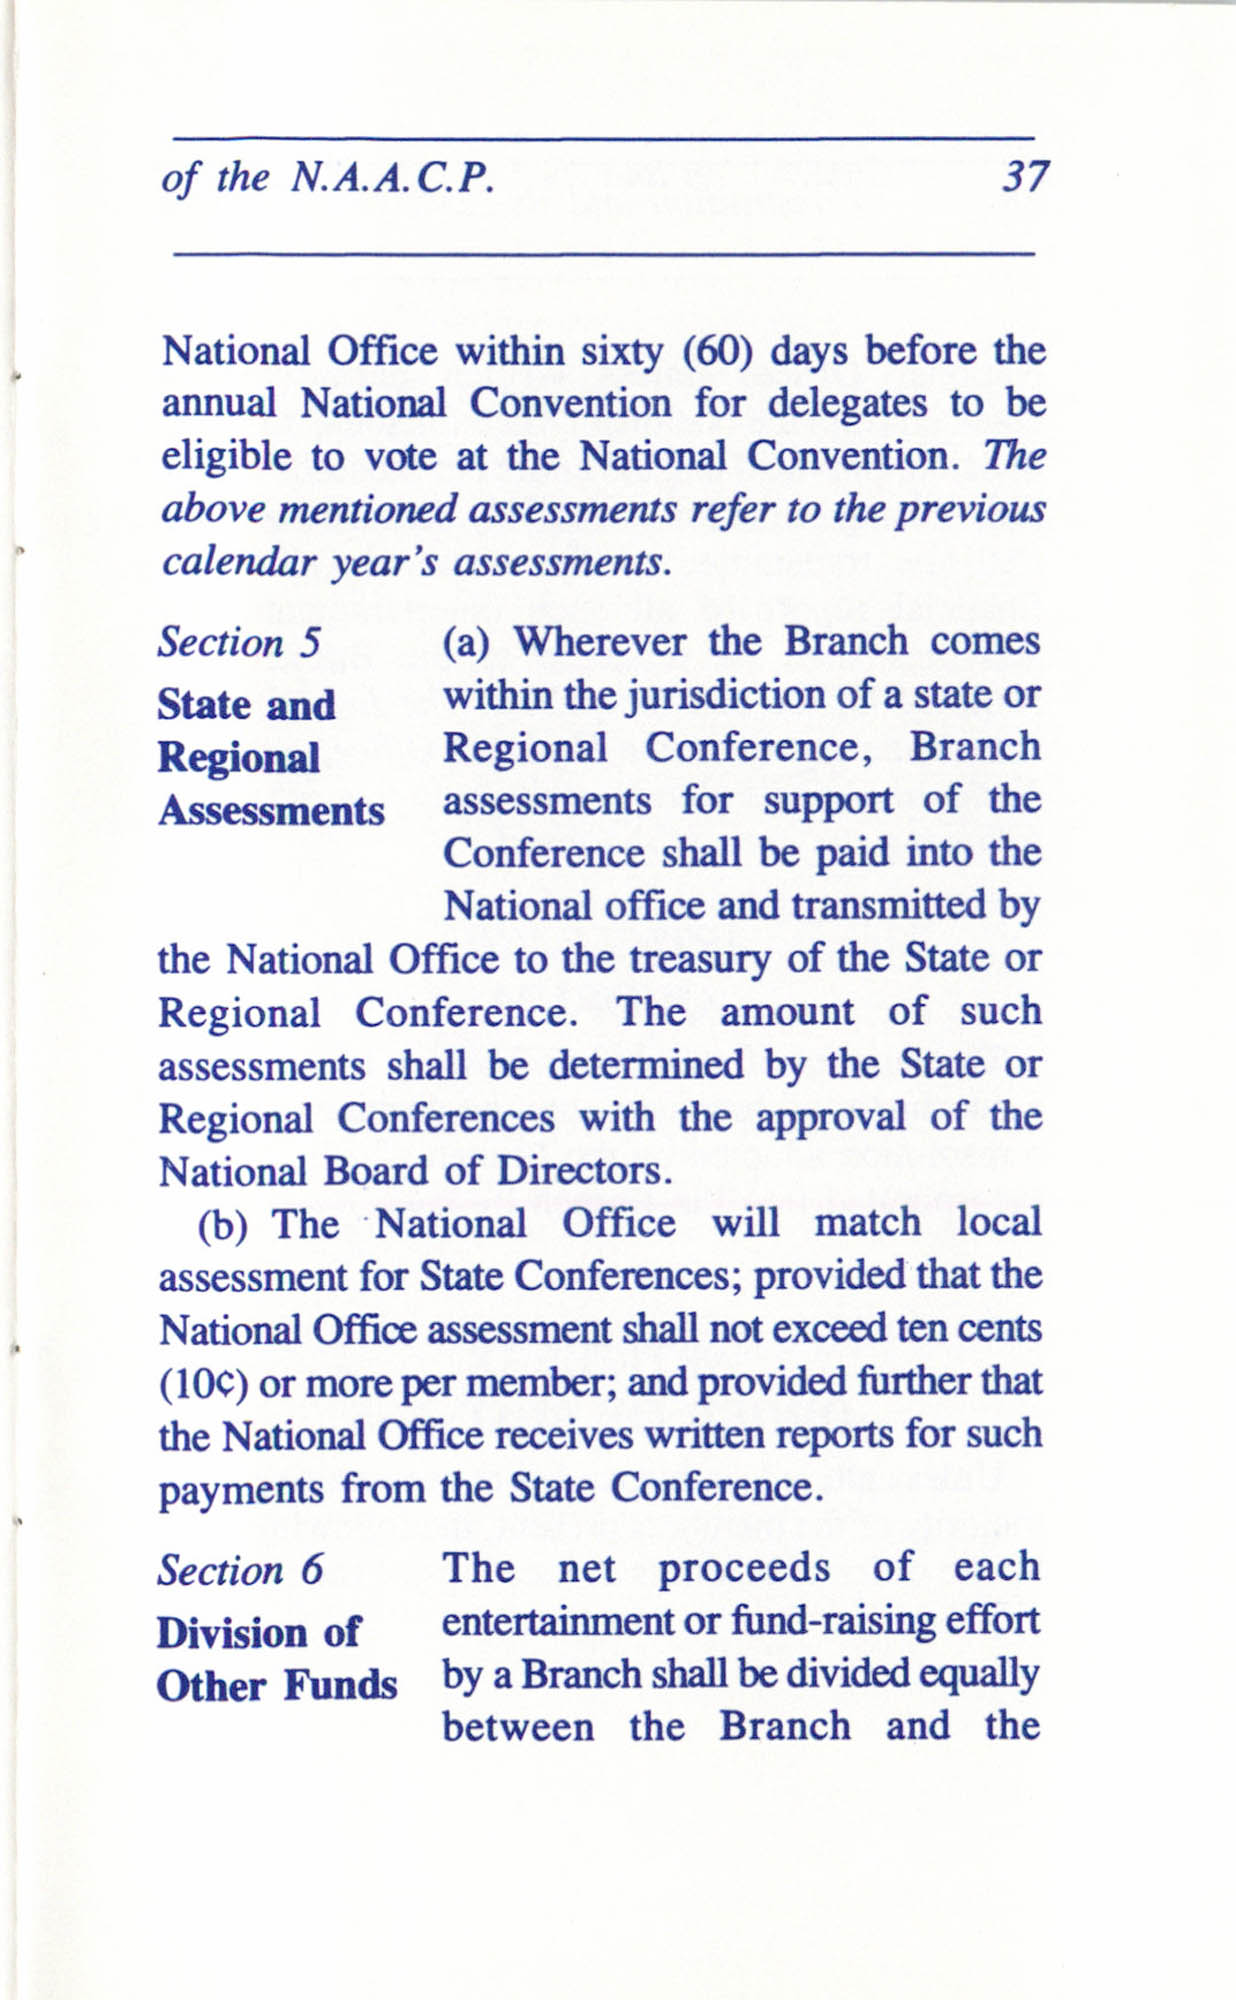 Constitution and By-Laws for Branches of the NAACP, June 1993, Page 37